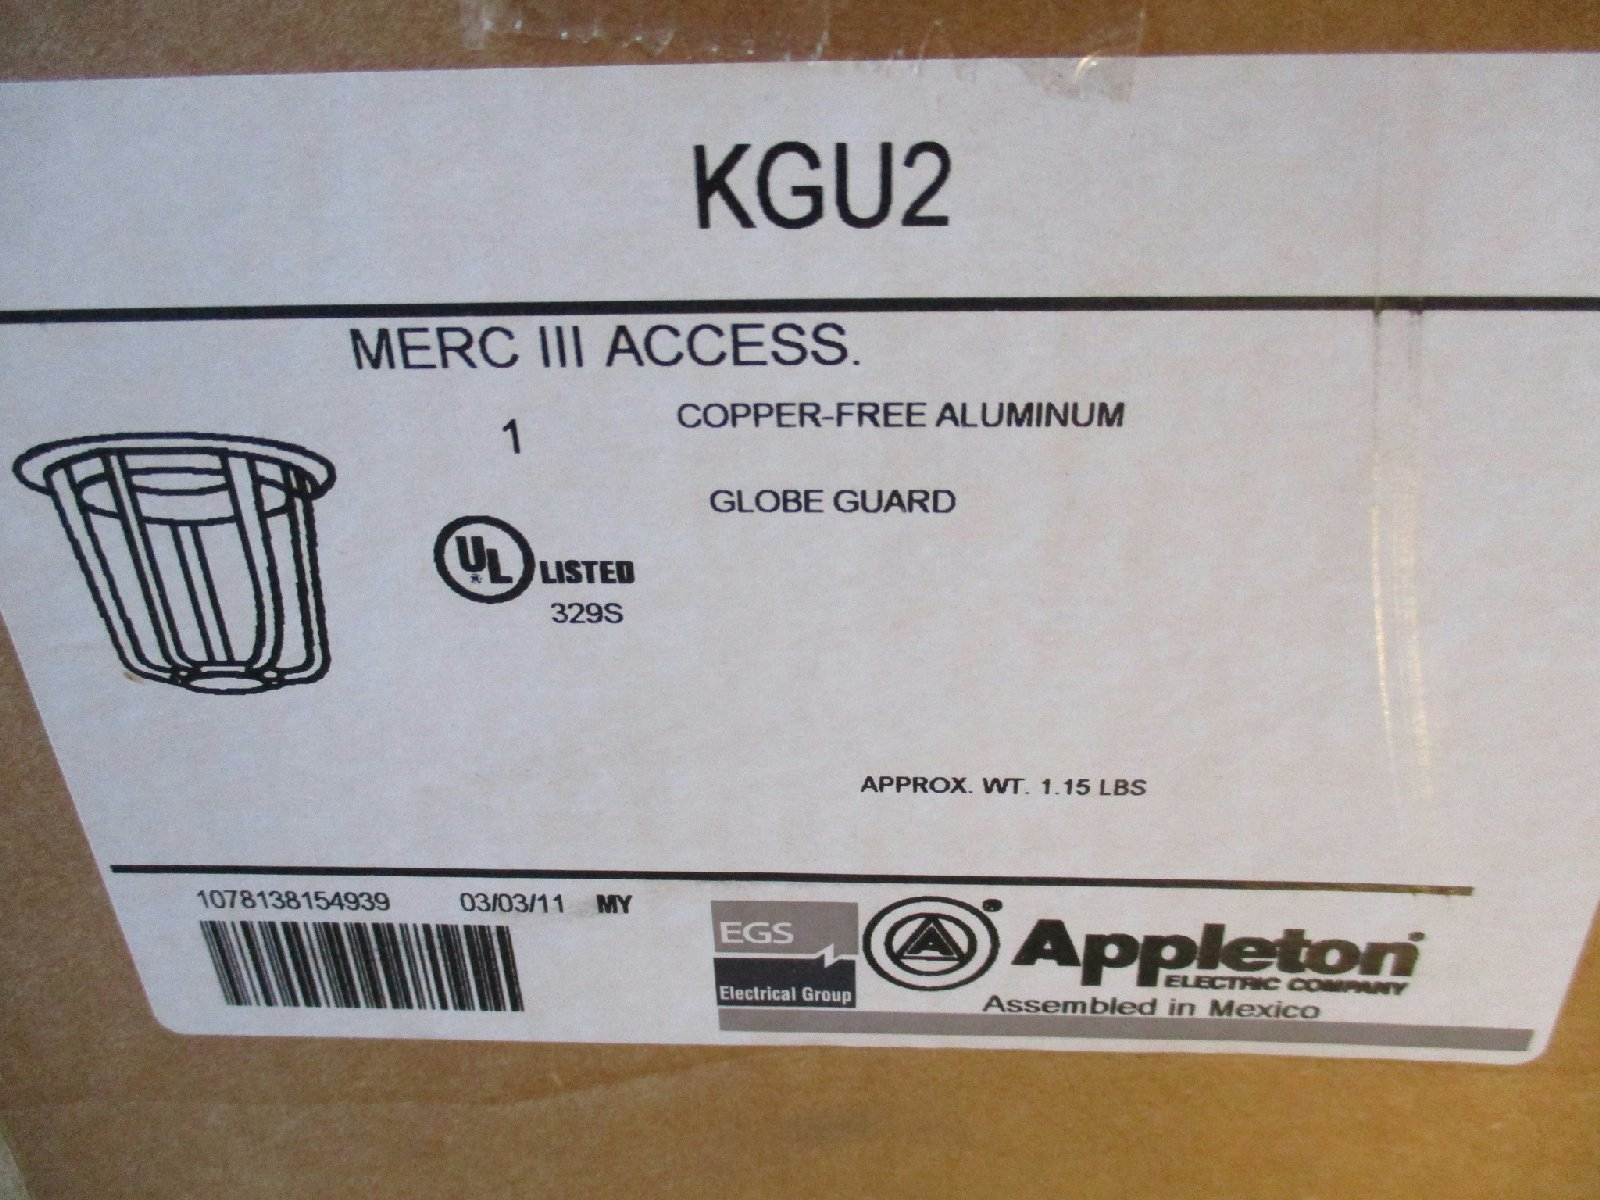 Appleton KPWBL1075-G-MT 100W HPS Wall Mount Fixture New